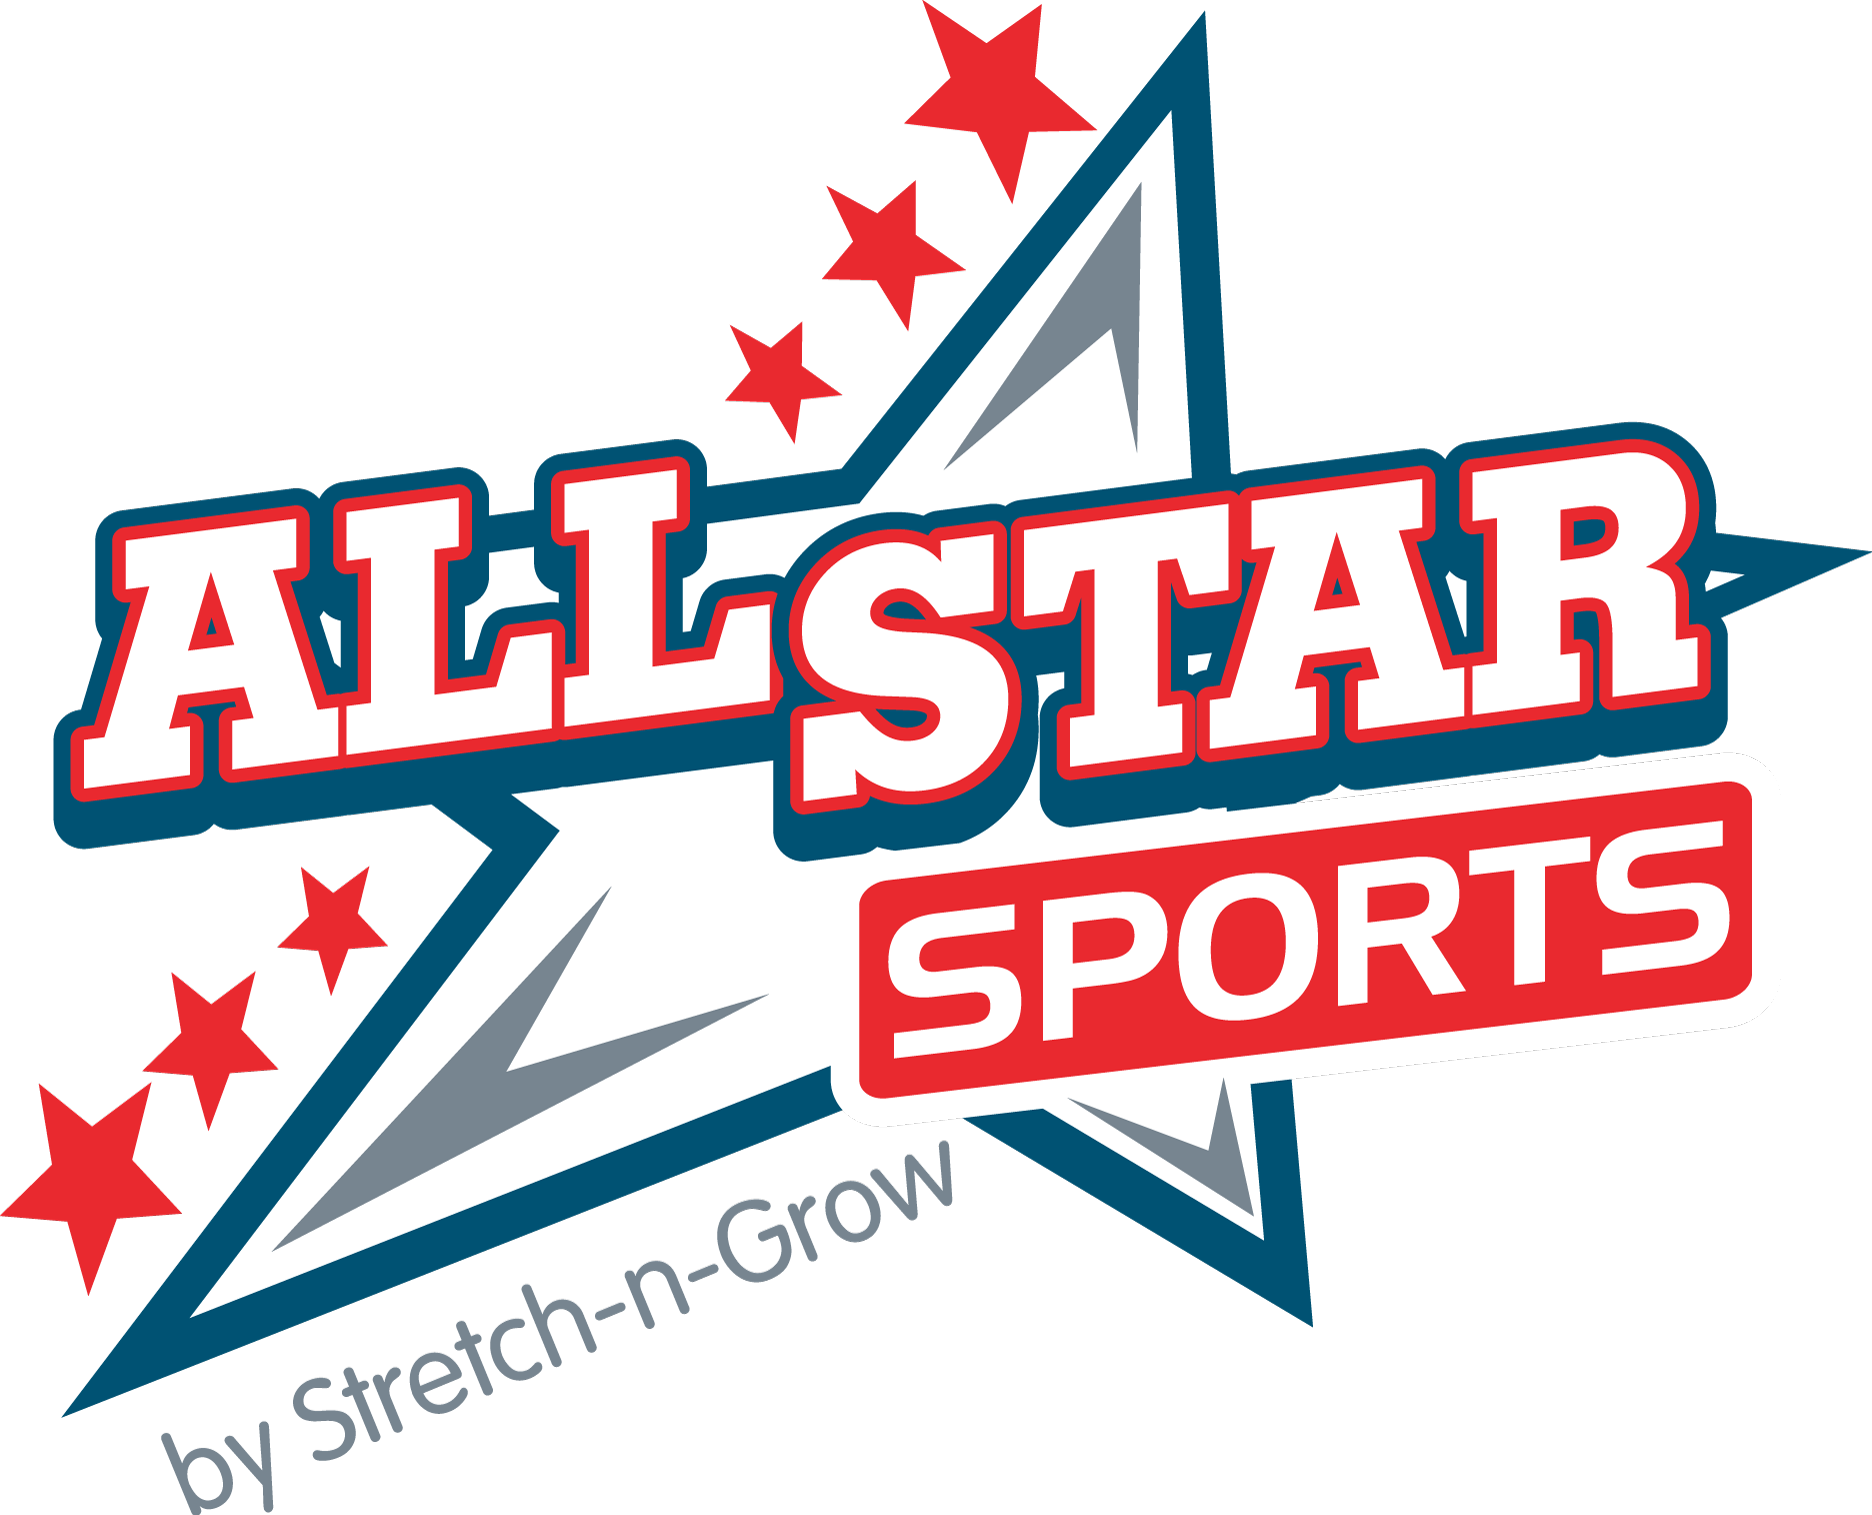 All star sports clipart royalty free library All Star Sports Clipart royalty free library